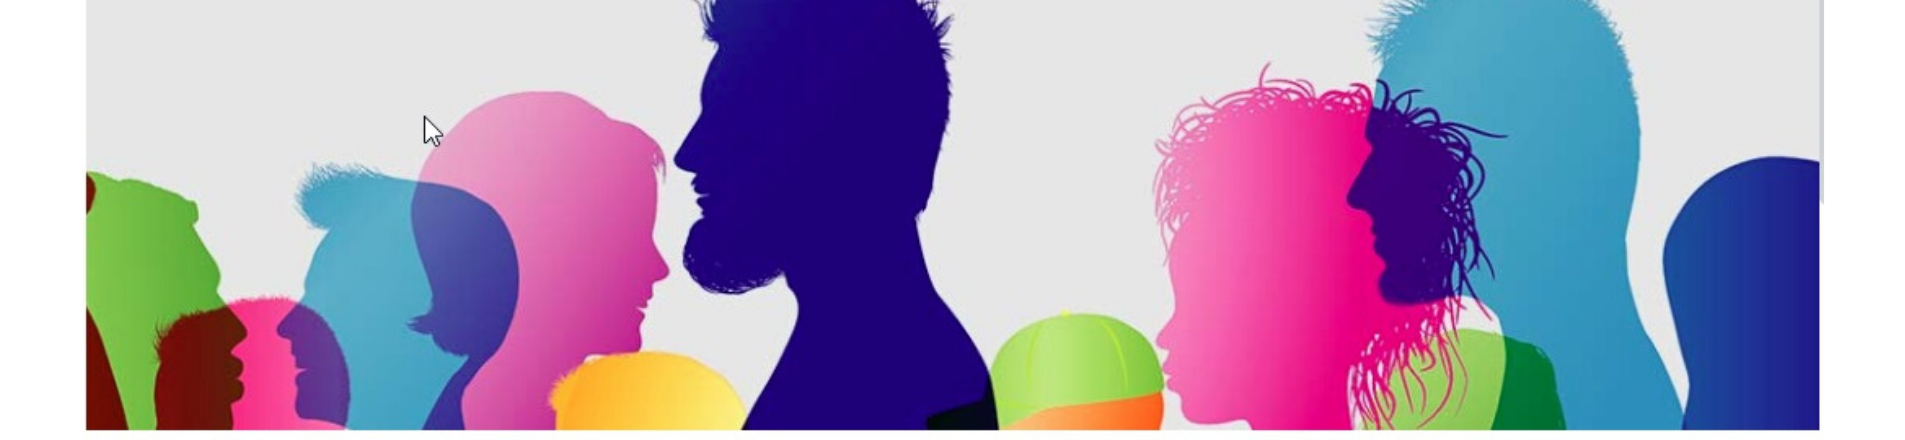 Diverse heads silhouettes